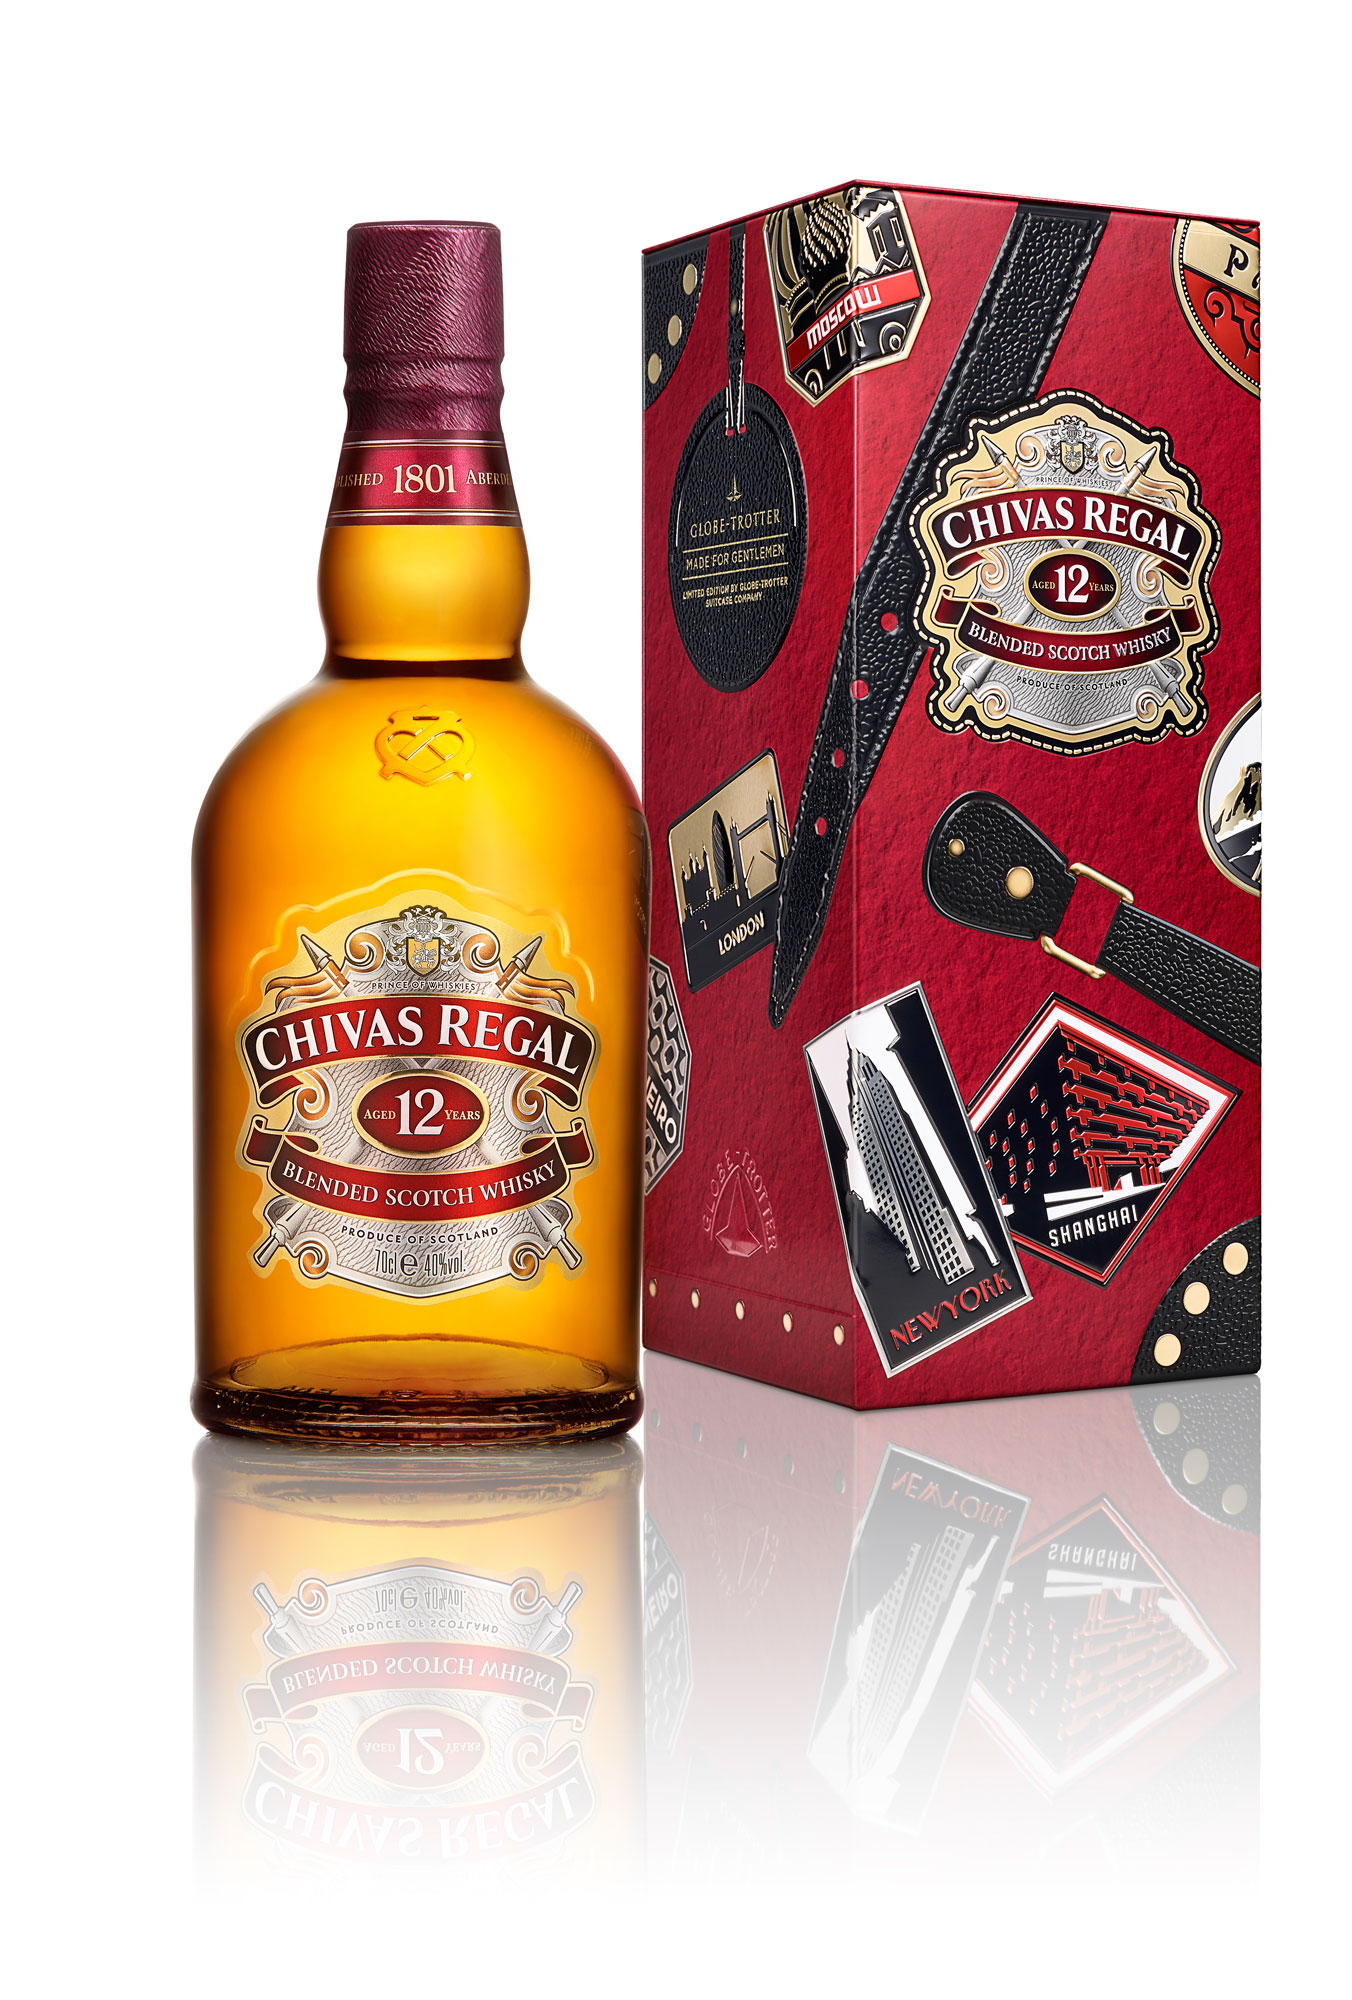 Chivas Regal 12 And Globe Trotter Limited Edition Collectibles